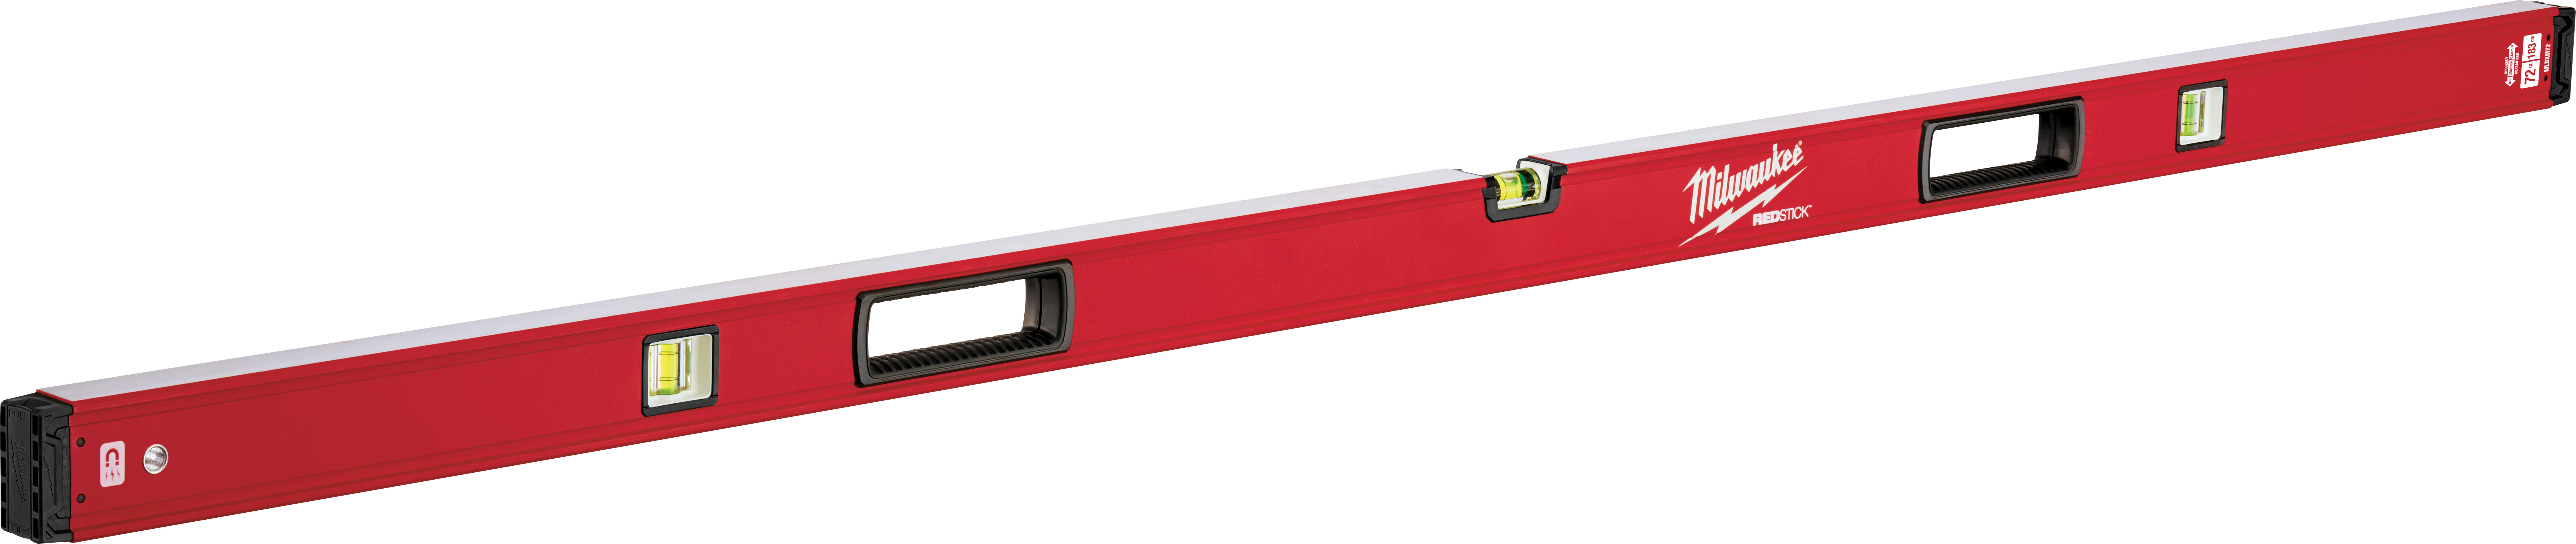 Milwaukee® REDSTICK™ MLBXM72 Magnetic Box Level, 72 in L, 3 Vials, Aluminum, (1) Level, (2) Plumb Vial Position, 0.0005 in/in Accuracy